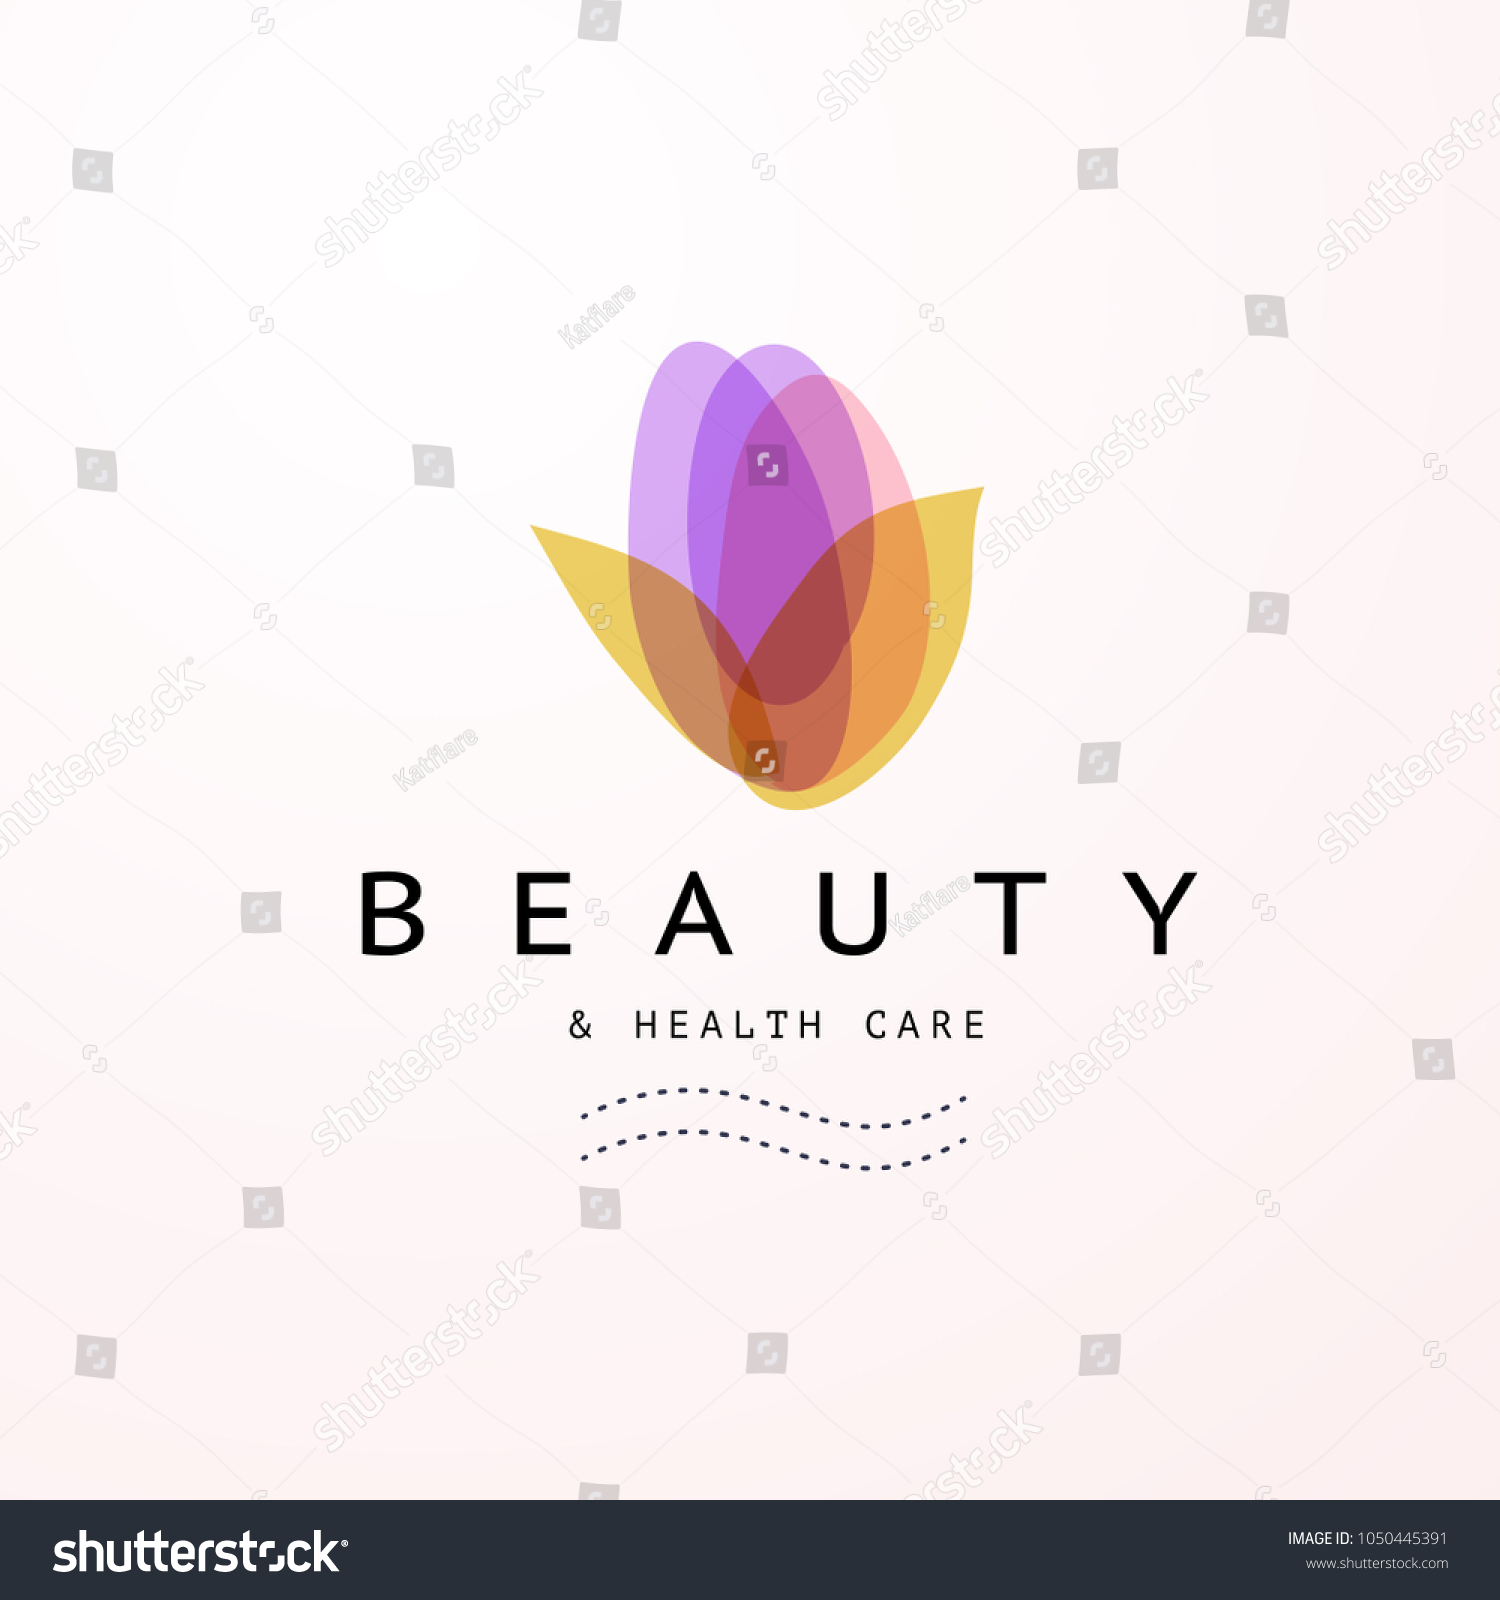 Transparent flower symbol beauty spa health stock illustration transparent flower symbol beauty spa and health care logo in light colors isolated izmirmasajfo